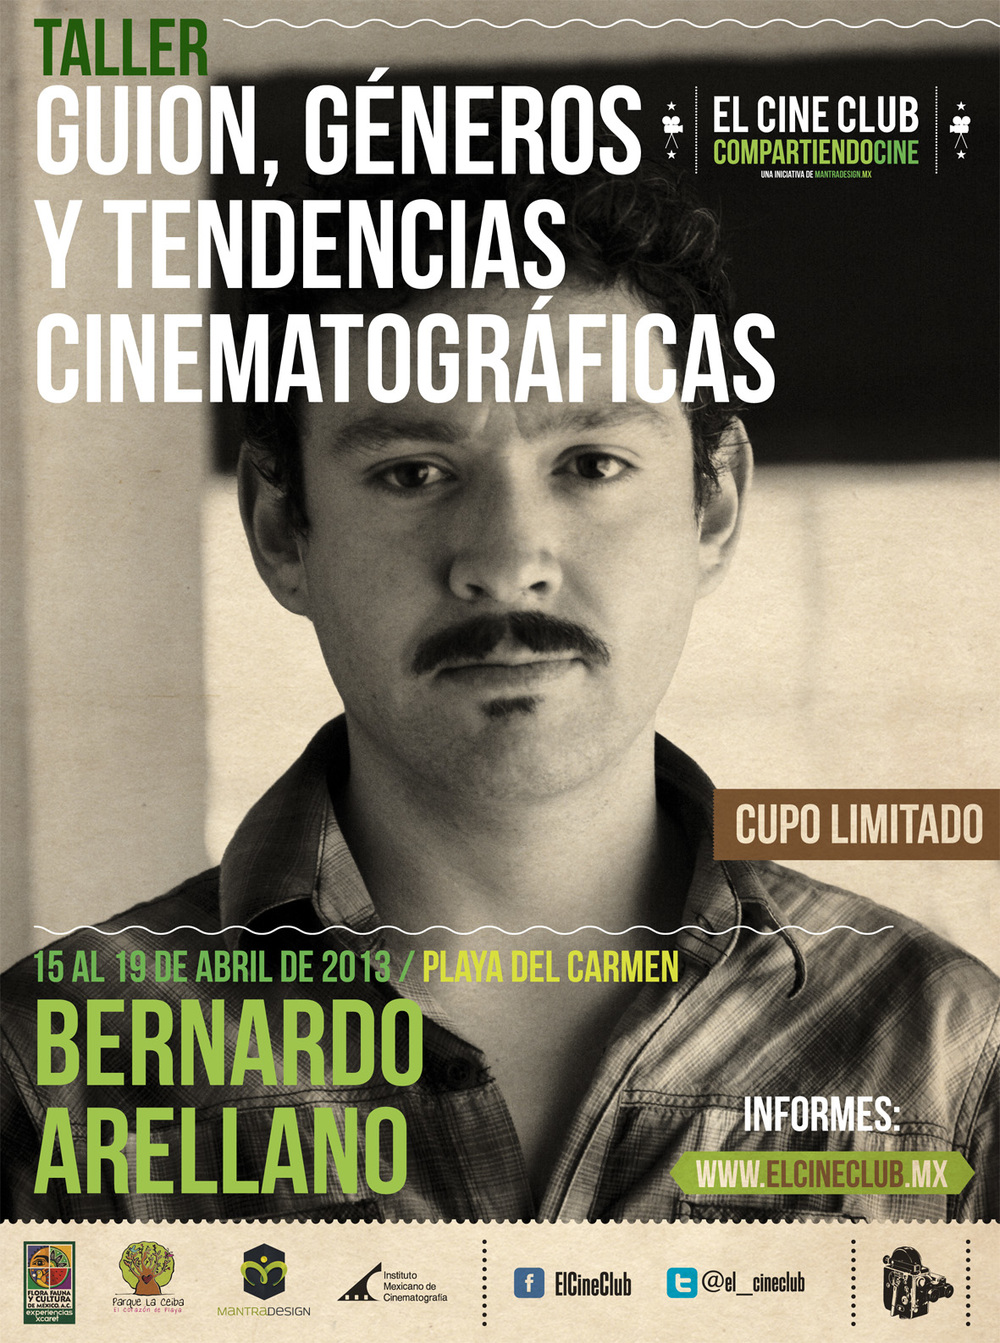 Taller Guion, Géneros y Tendencias Cinematográficas